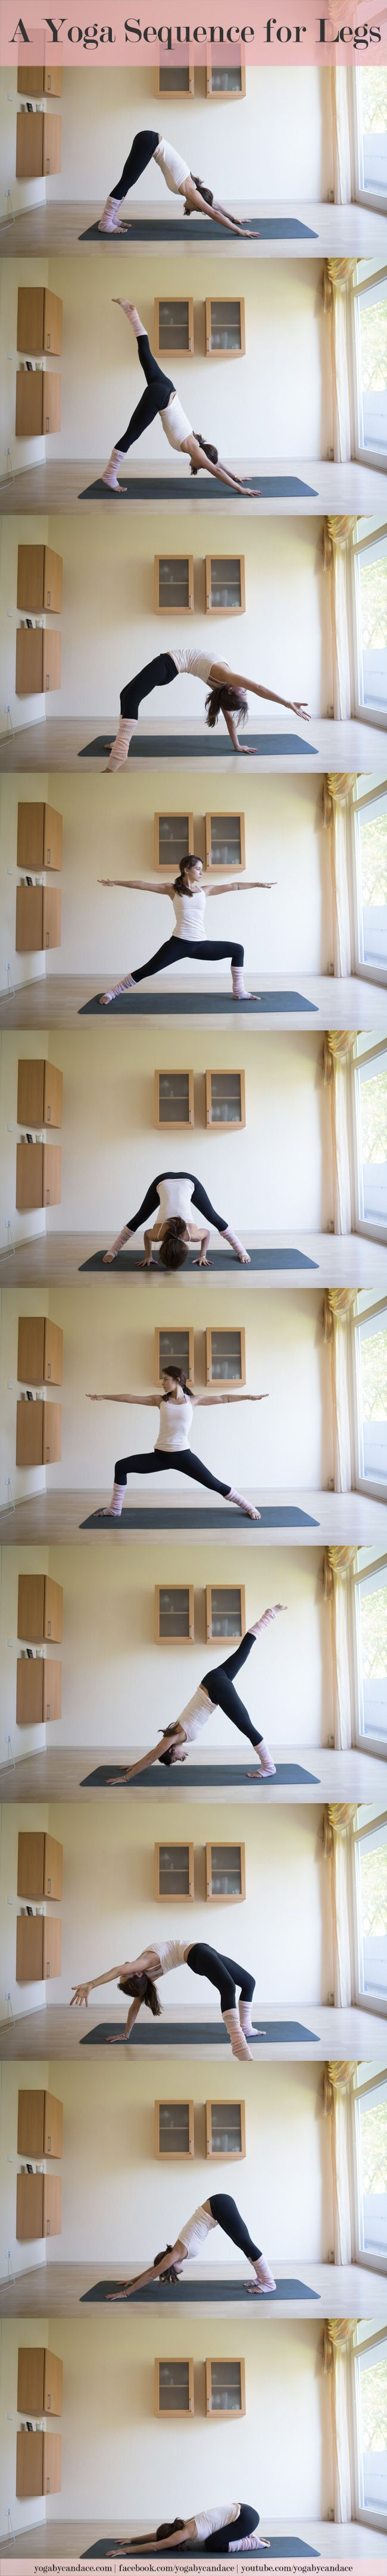 A yoga sequence for legs you can do right from home.